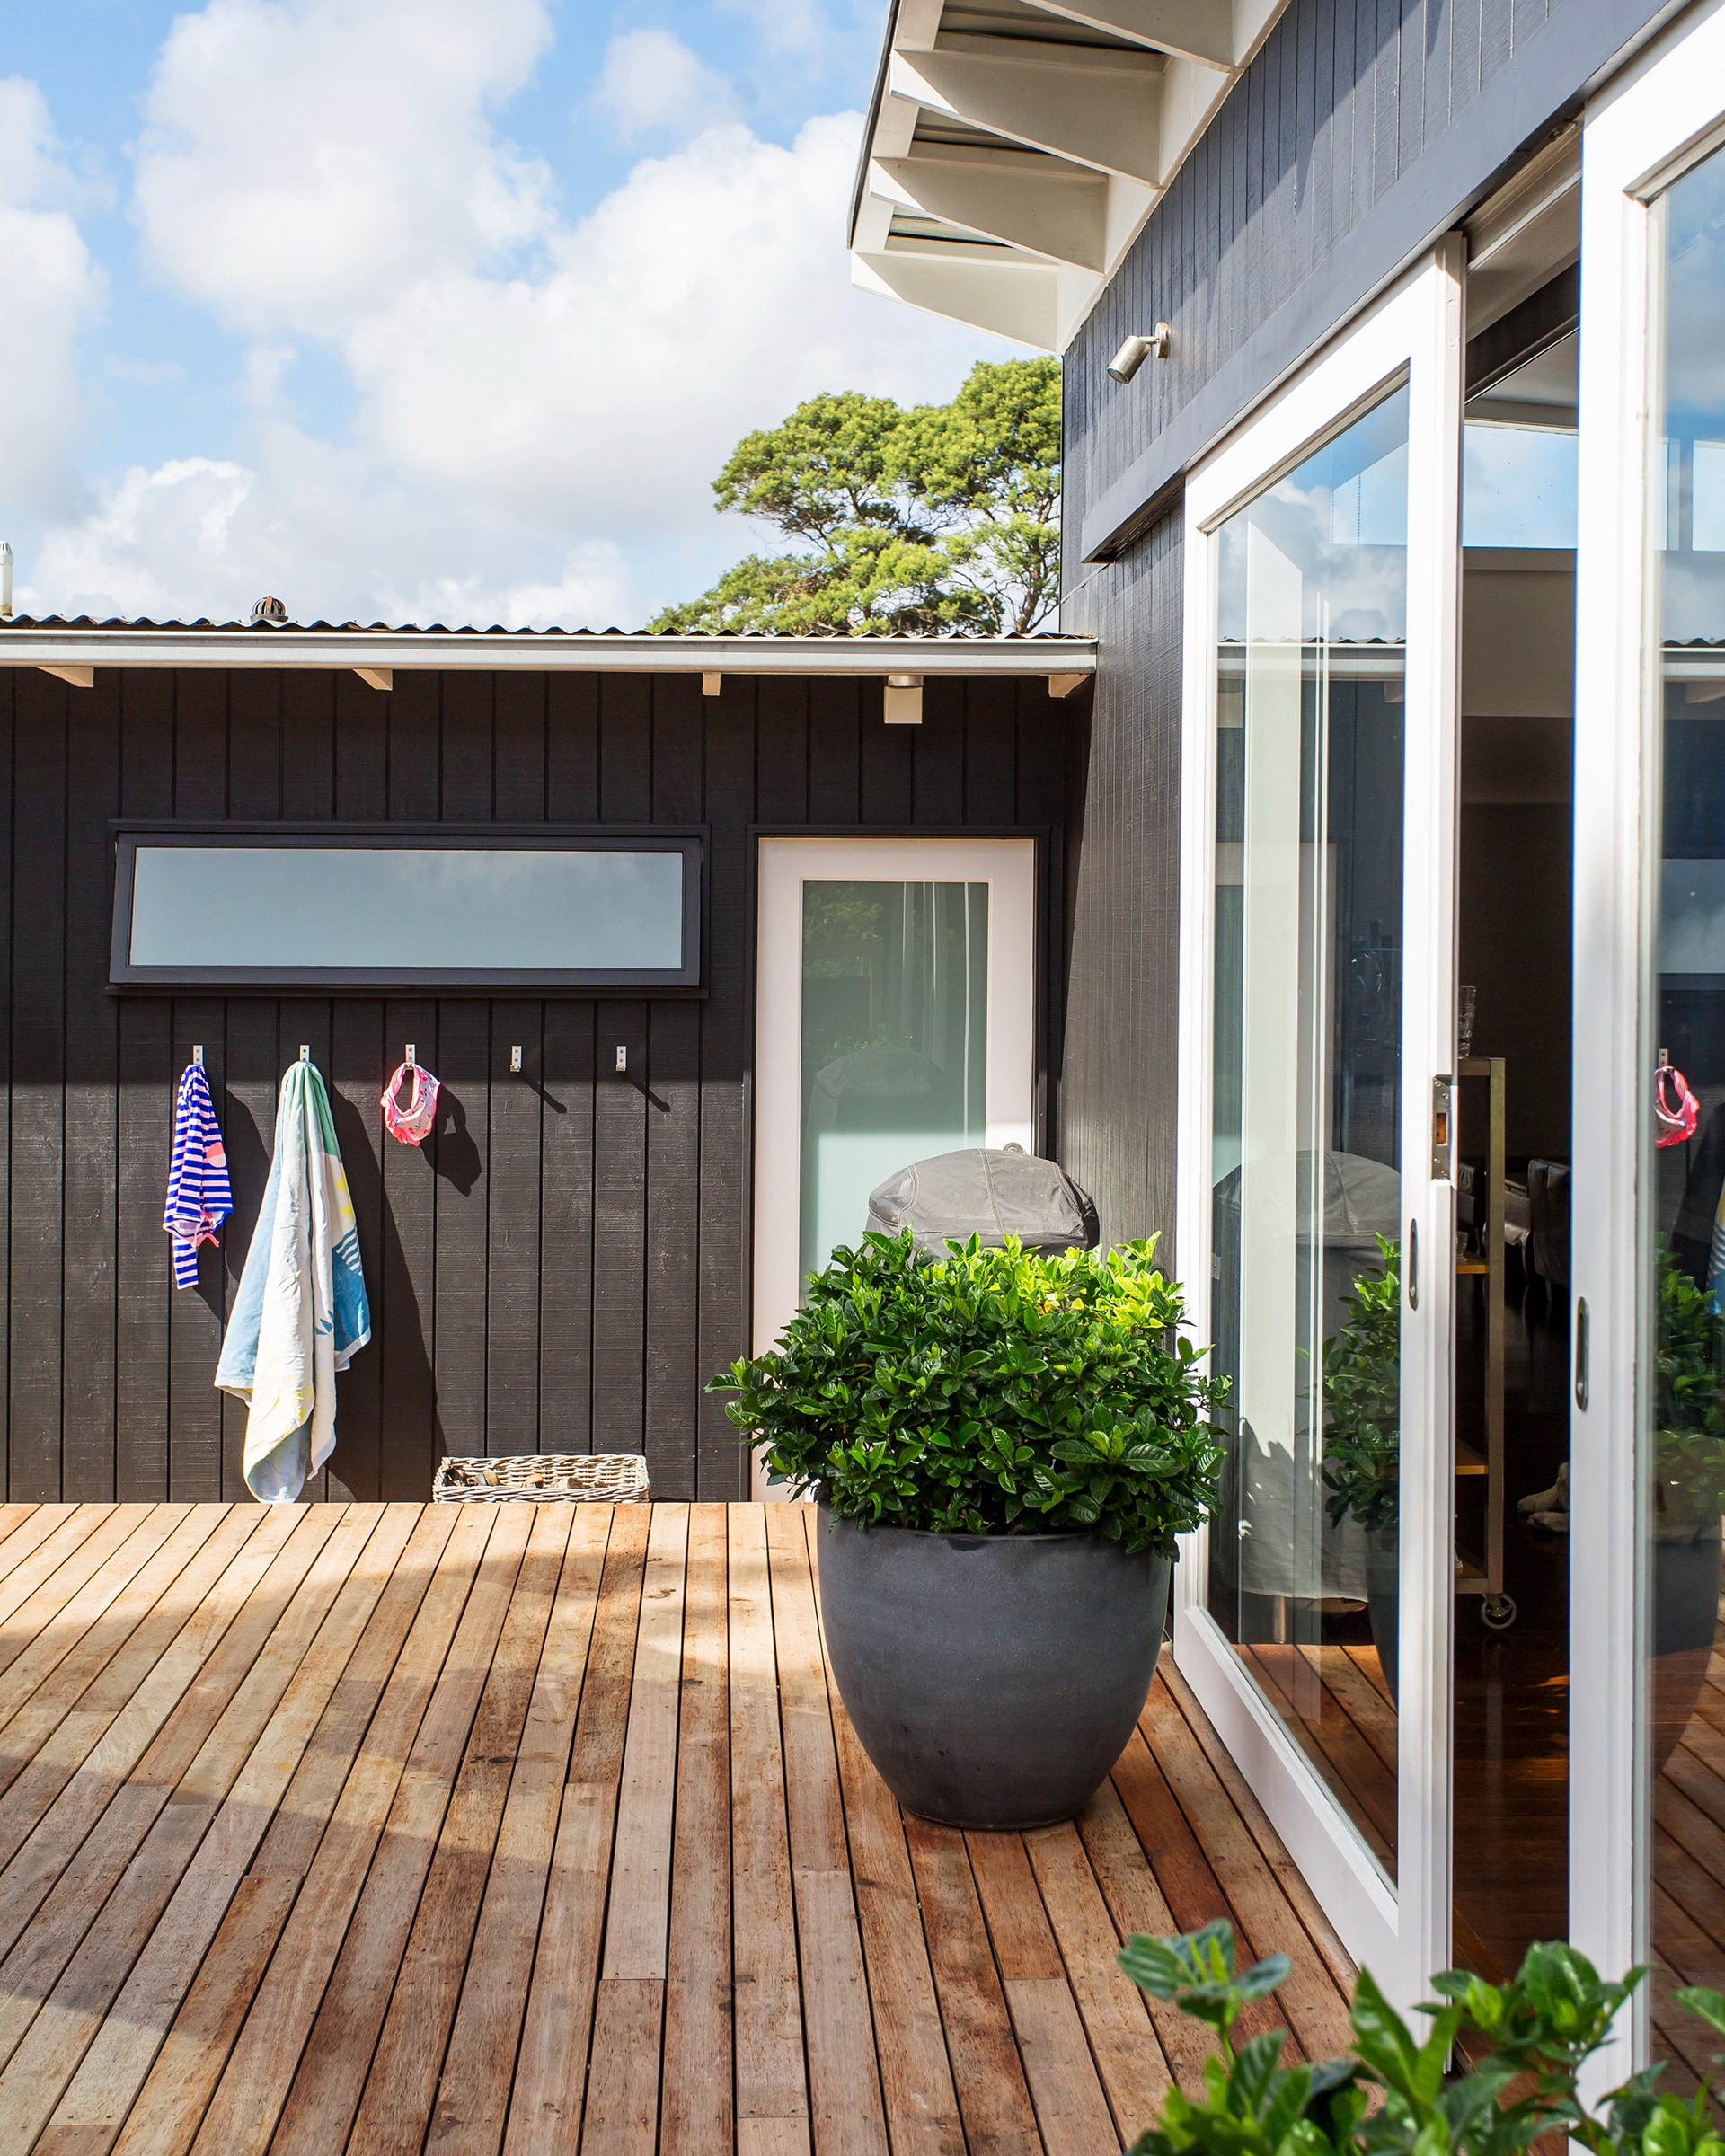 **Edwina McLean** This old fibro beachshack on the Mornington Peninsula has been transformed into a modern marvel. [See the full home here](http://www.homestolove.com.au/renovation-of-an-old-fibro-beach-shack-4405) or [vote for this home](http://www.homestolove.com.au/homes-reader-home-of-the-year-4499).